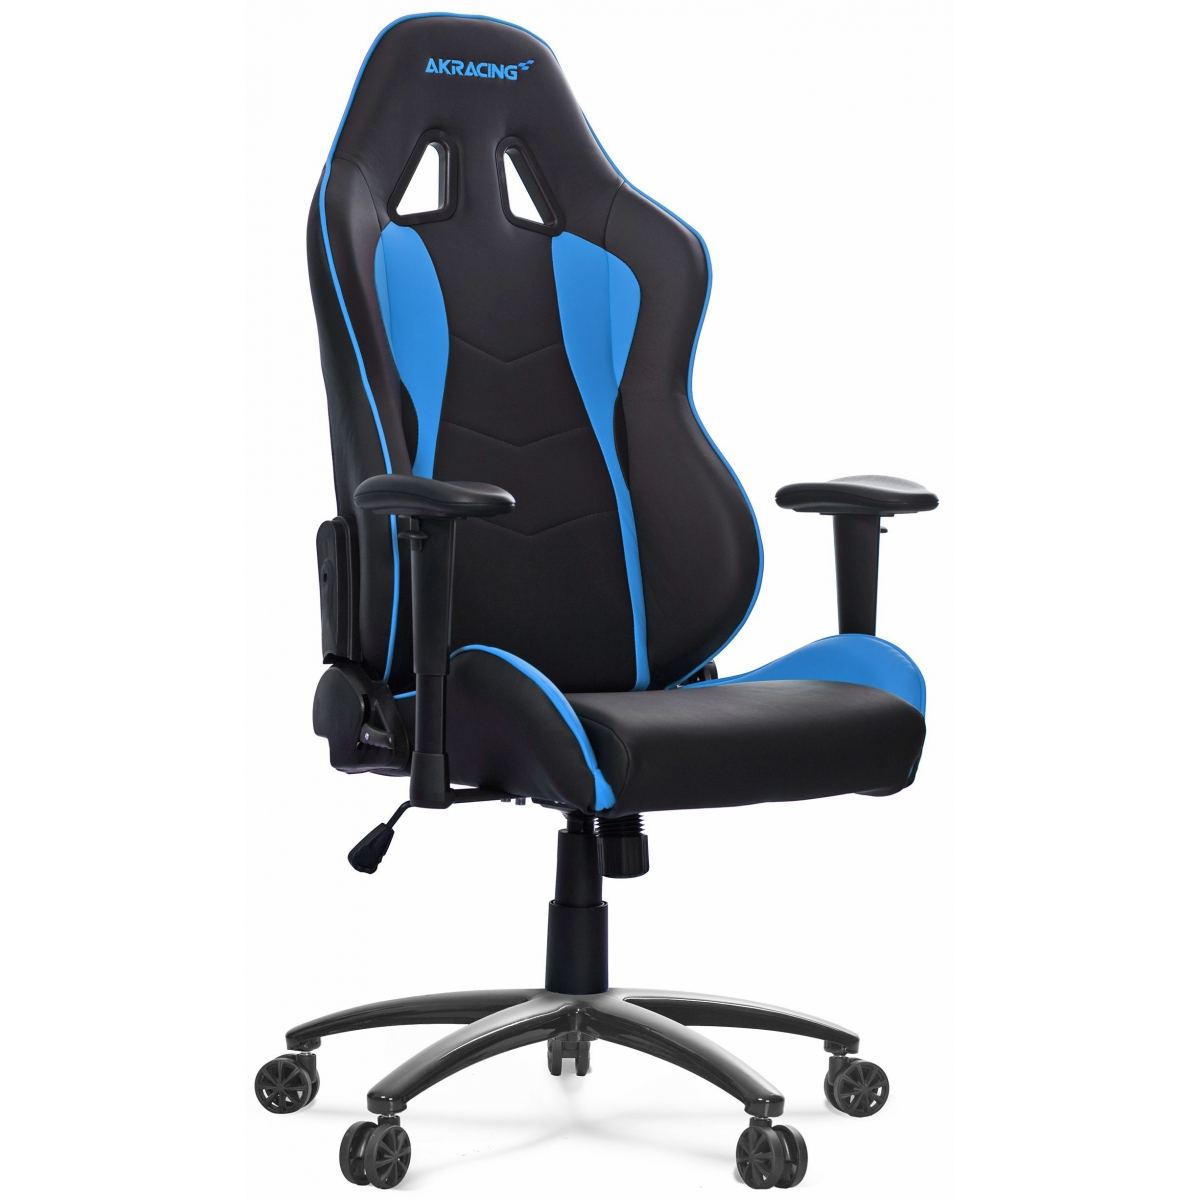 Cadeira Gamer AKRacing Nitro, Reclinável, Blue, AK-NITRO-BL